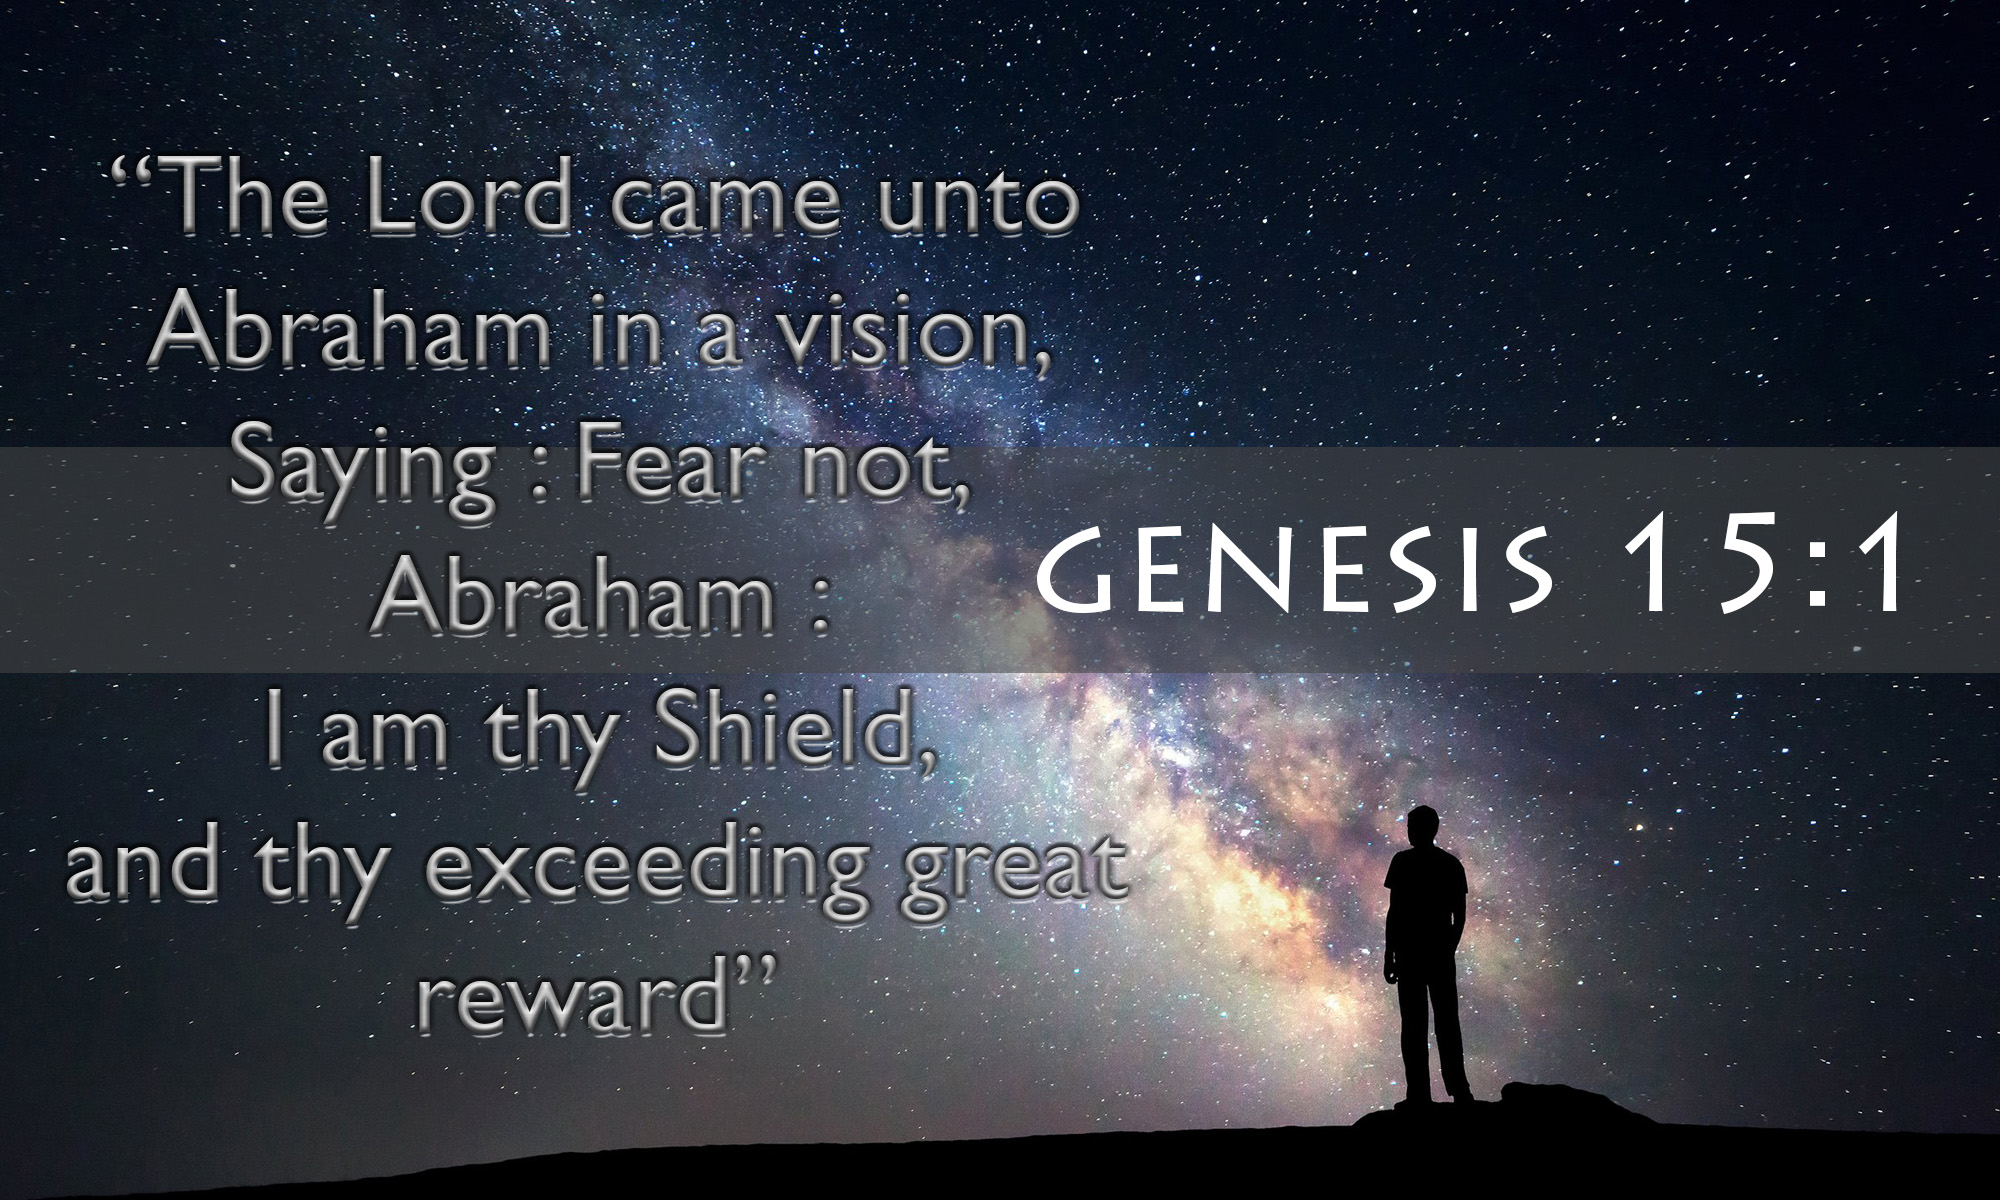 The Lord came unto Abraham in a vision, saying Fear not, Abraham I am thy Shield